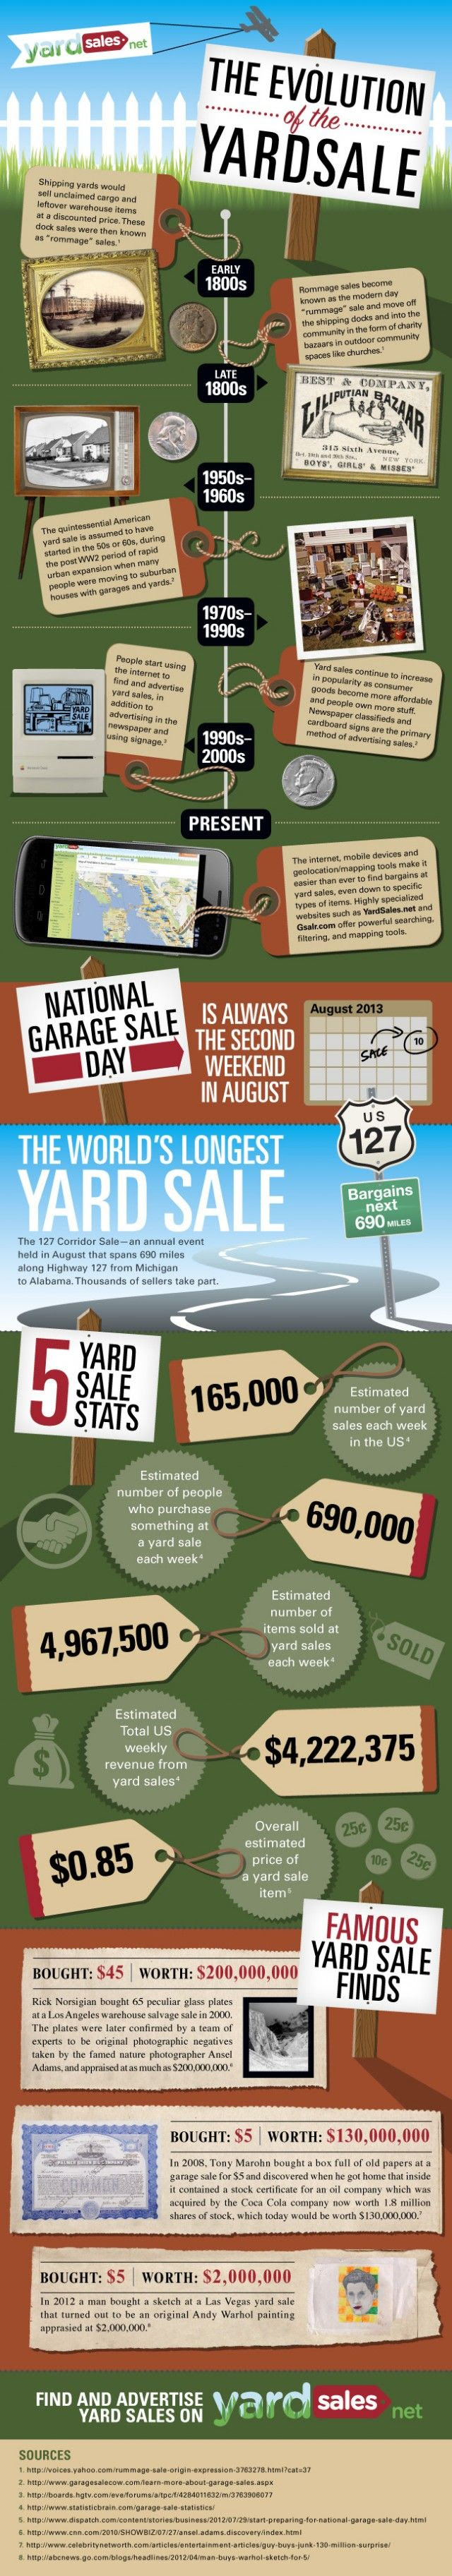 The Evolution of the Yard Sale